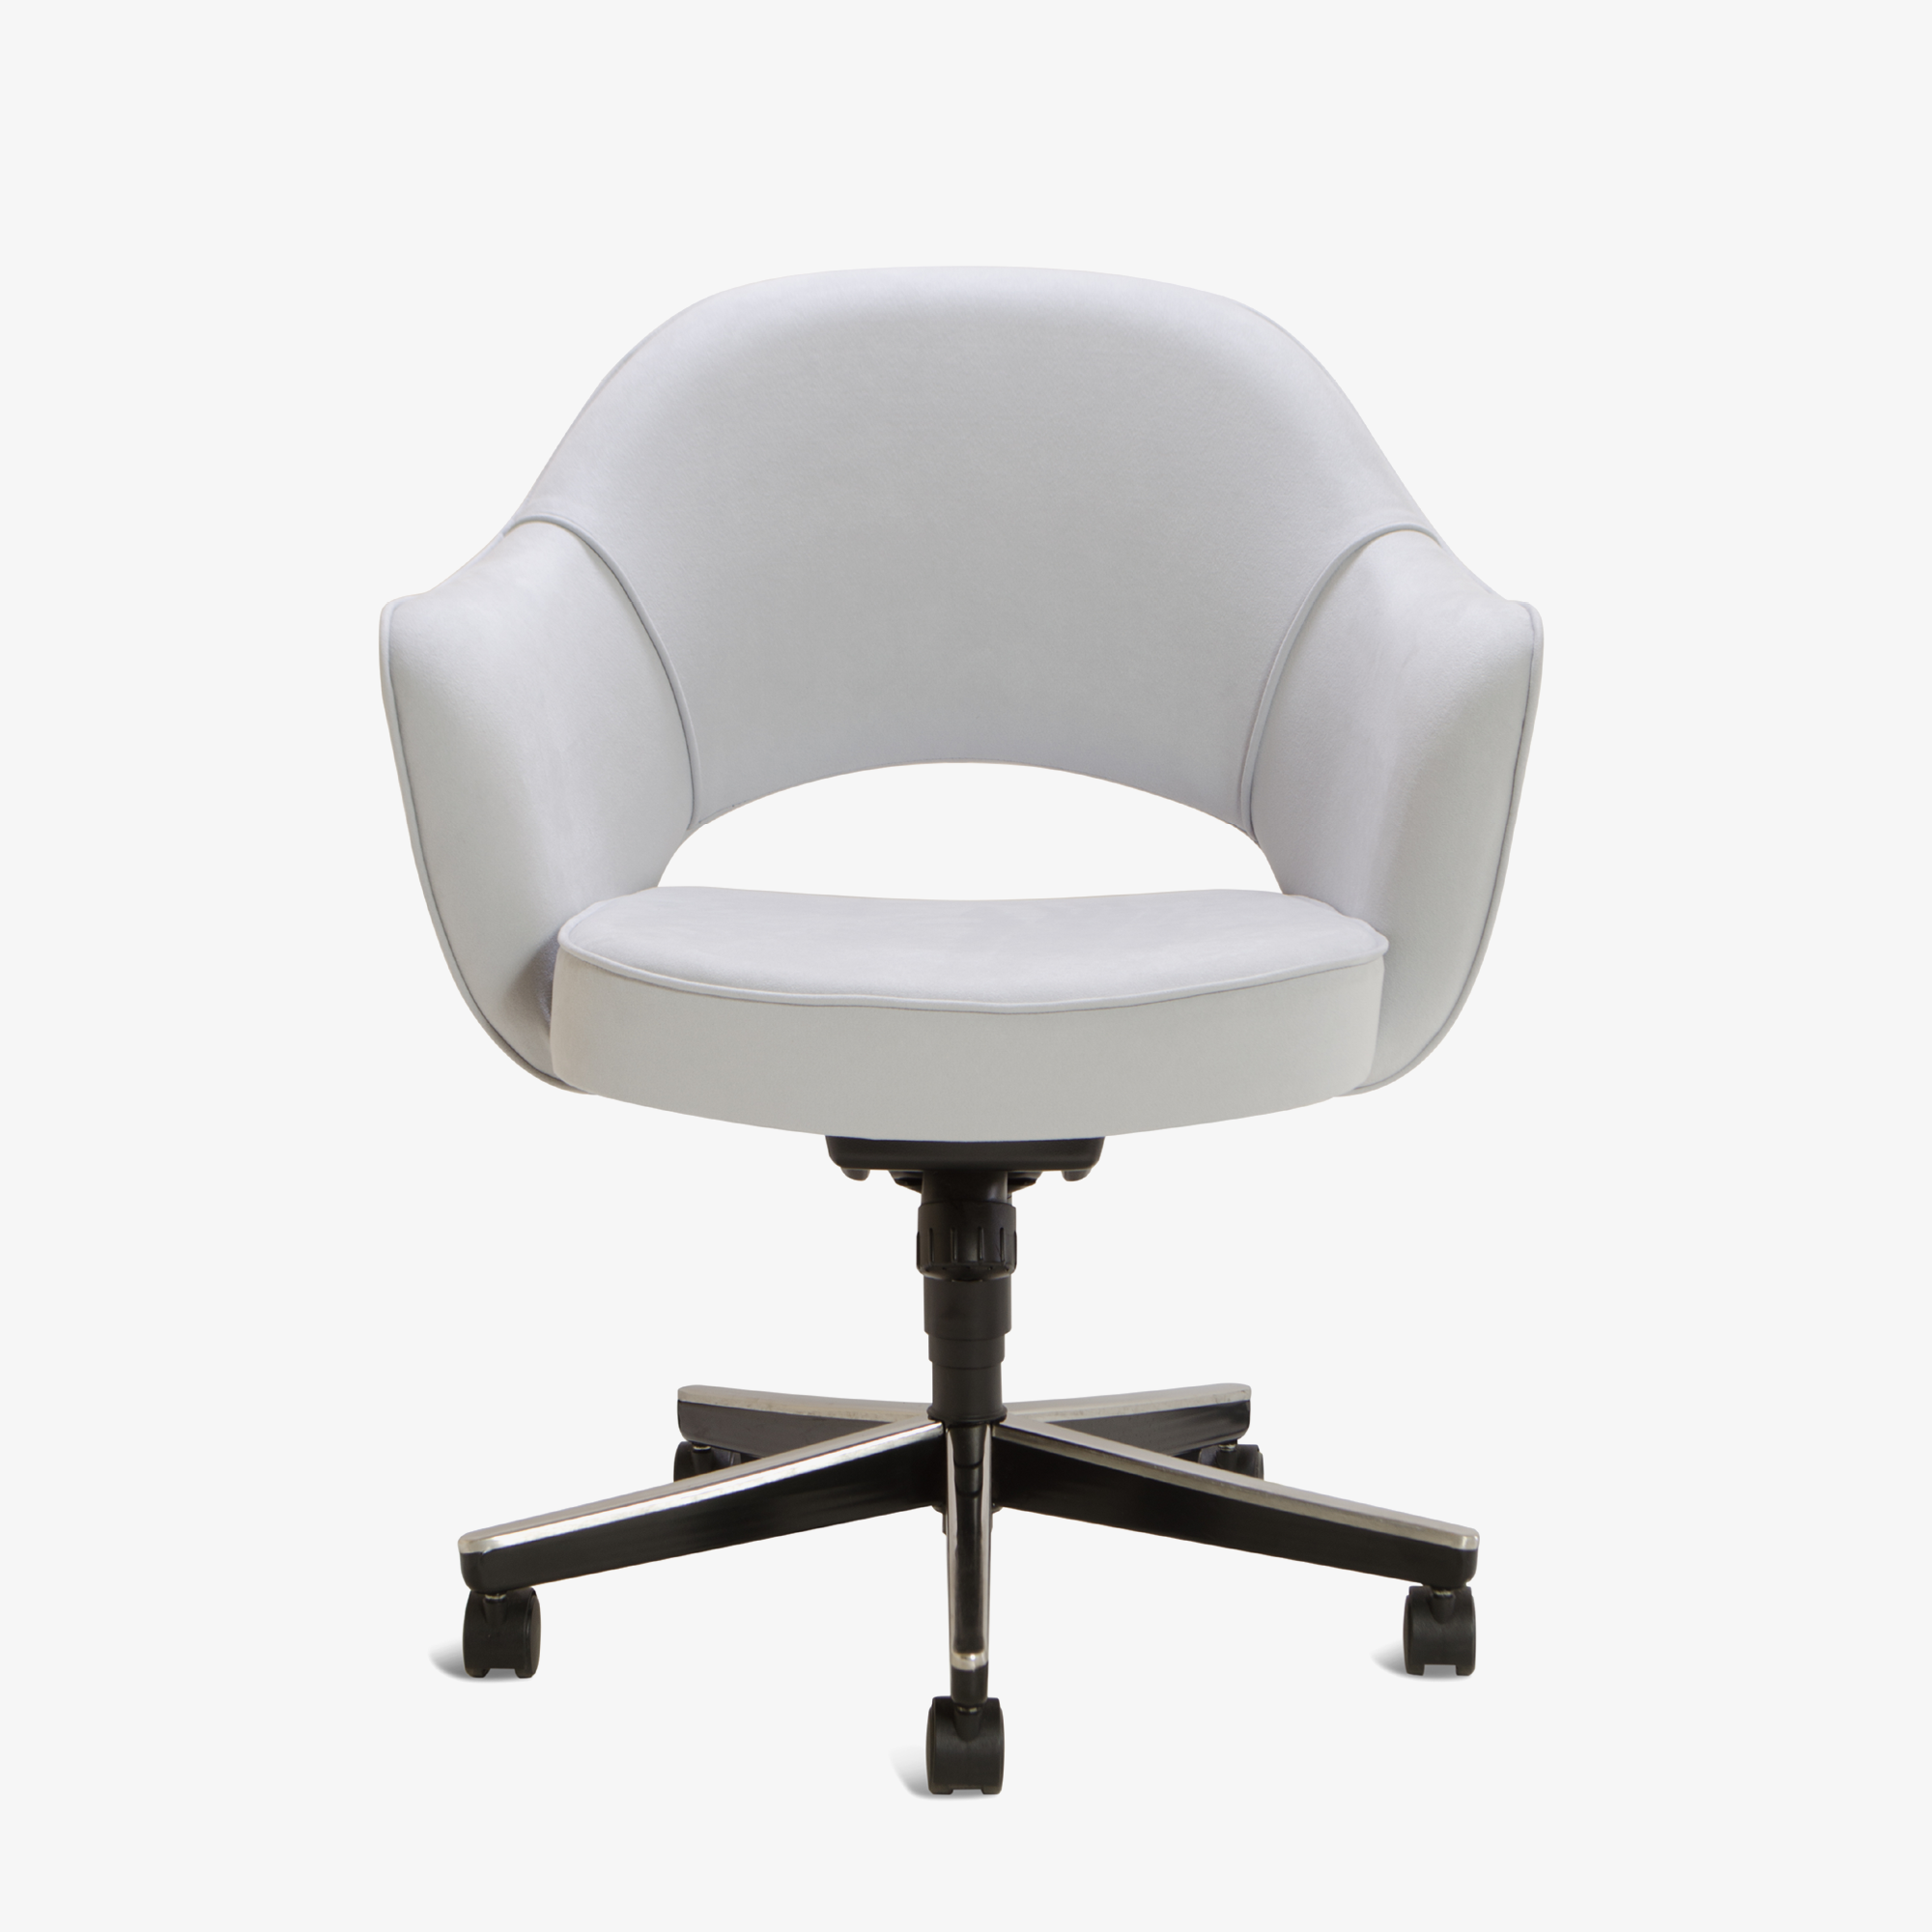 Knoll Saarinen Executive Arm Chair in Luxe Suede, Swivel Base